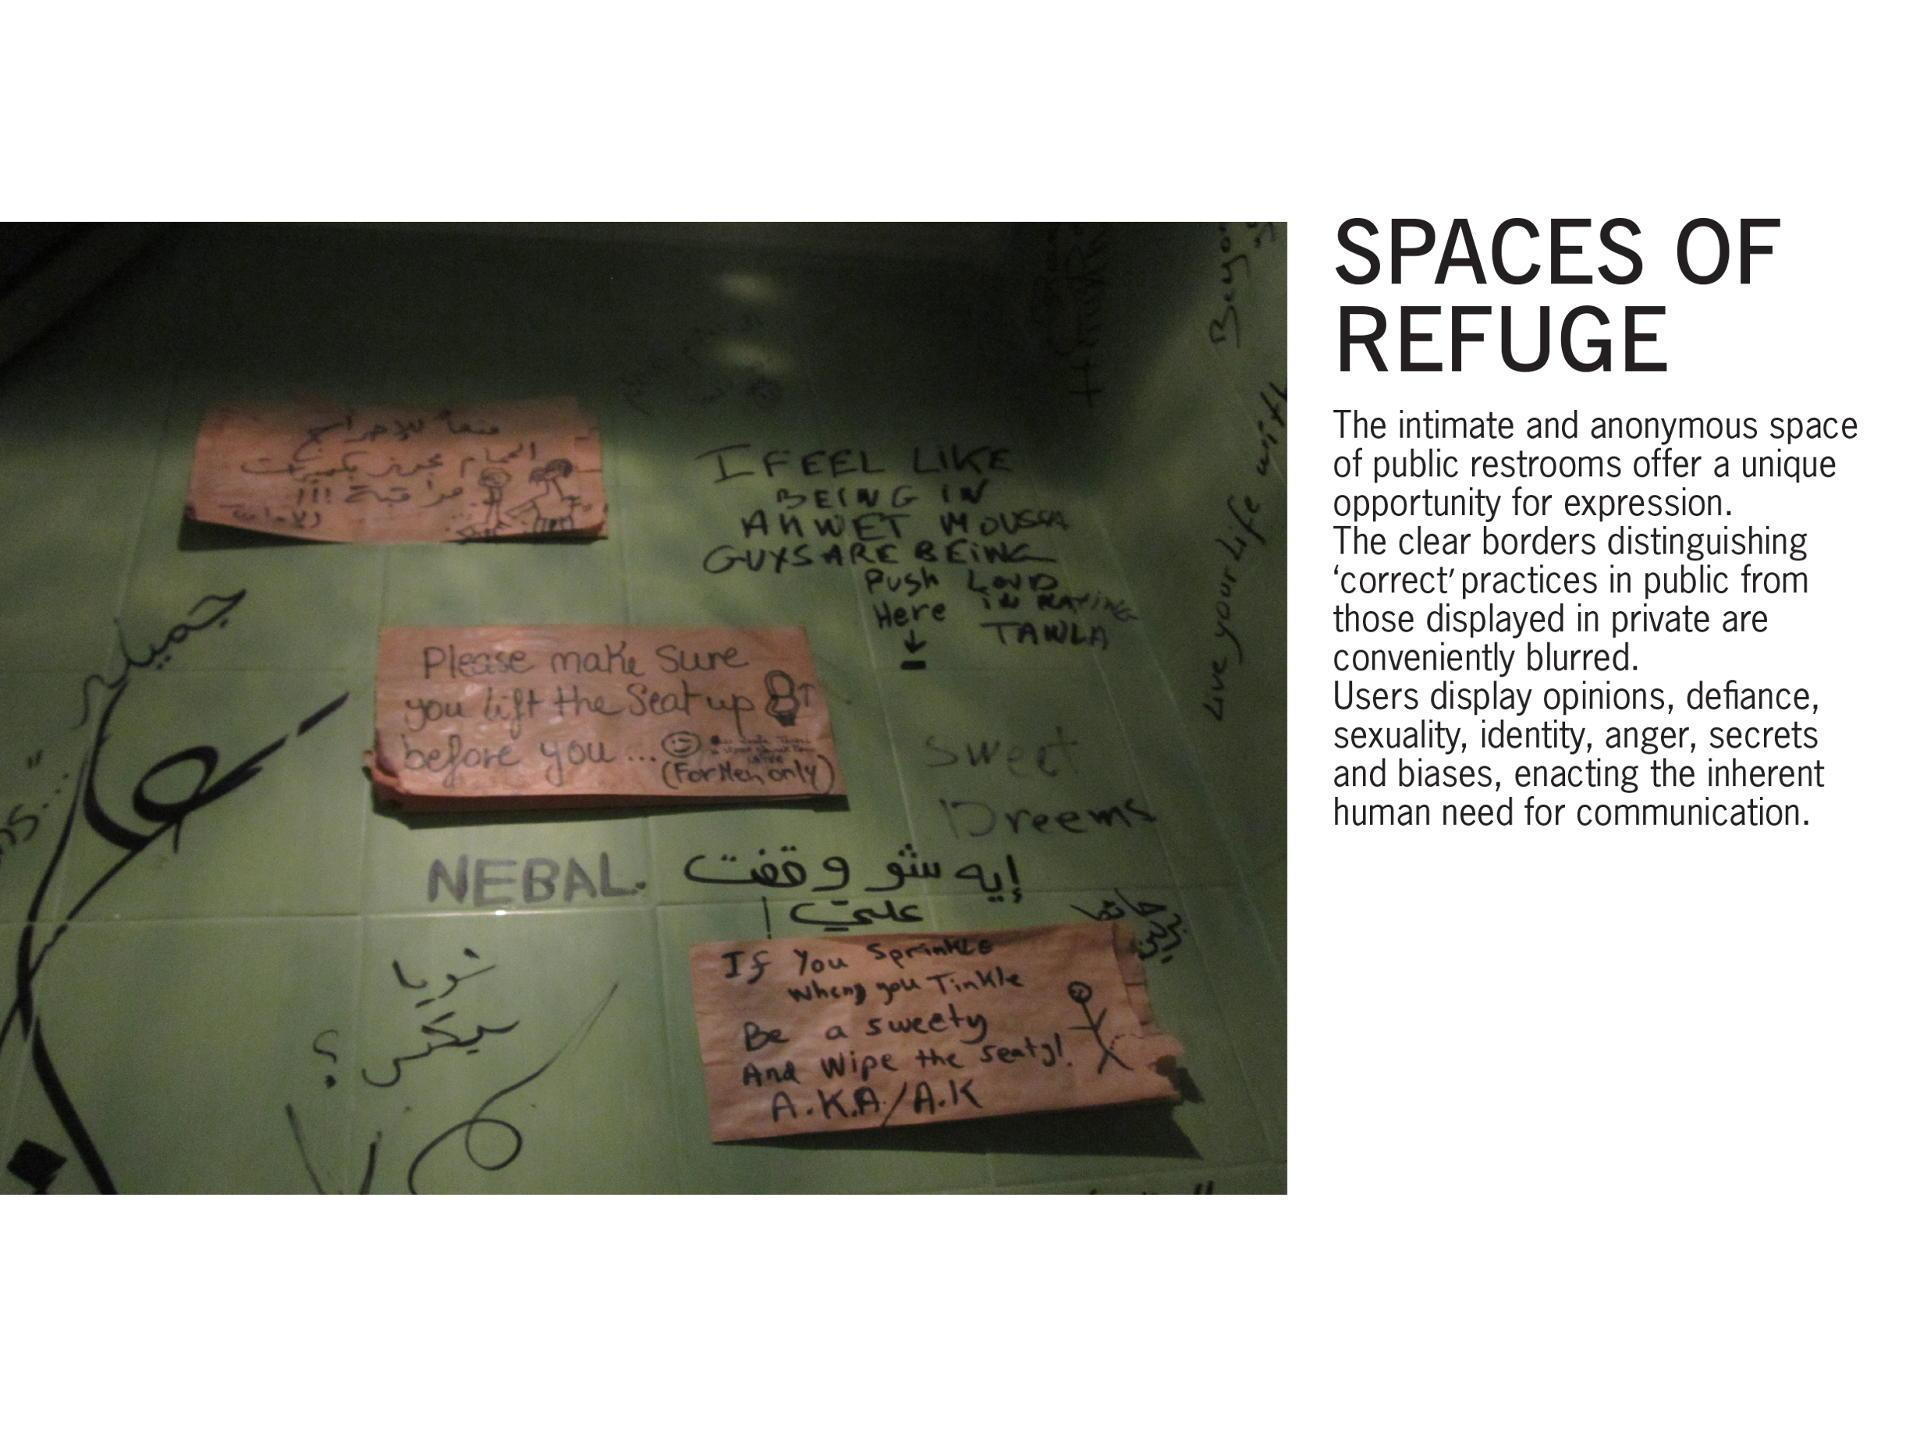 Spaces of Refuge - Visual design